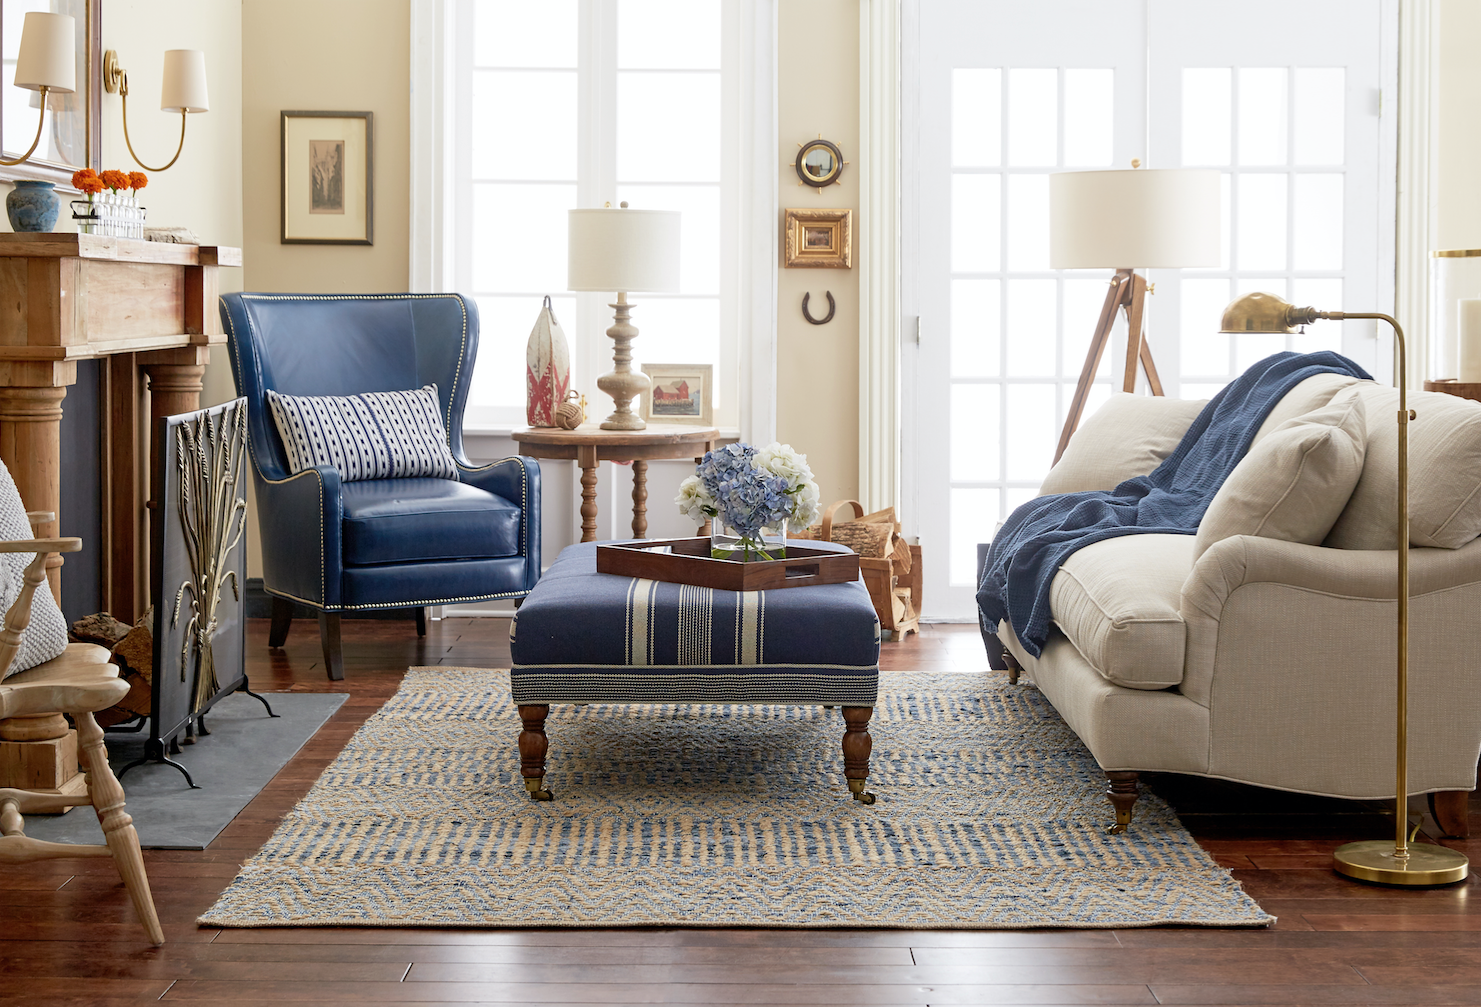 New England Living Room Decor: Classic New England Living Room Style With Traditional